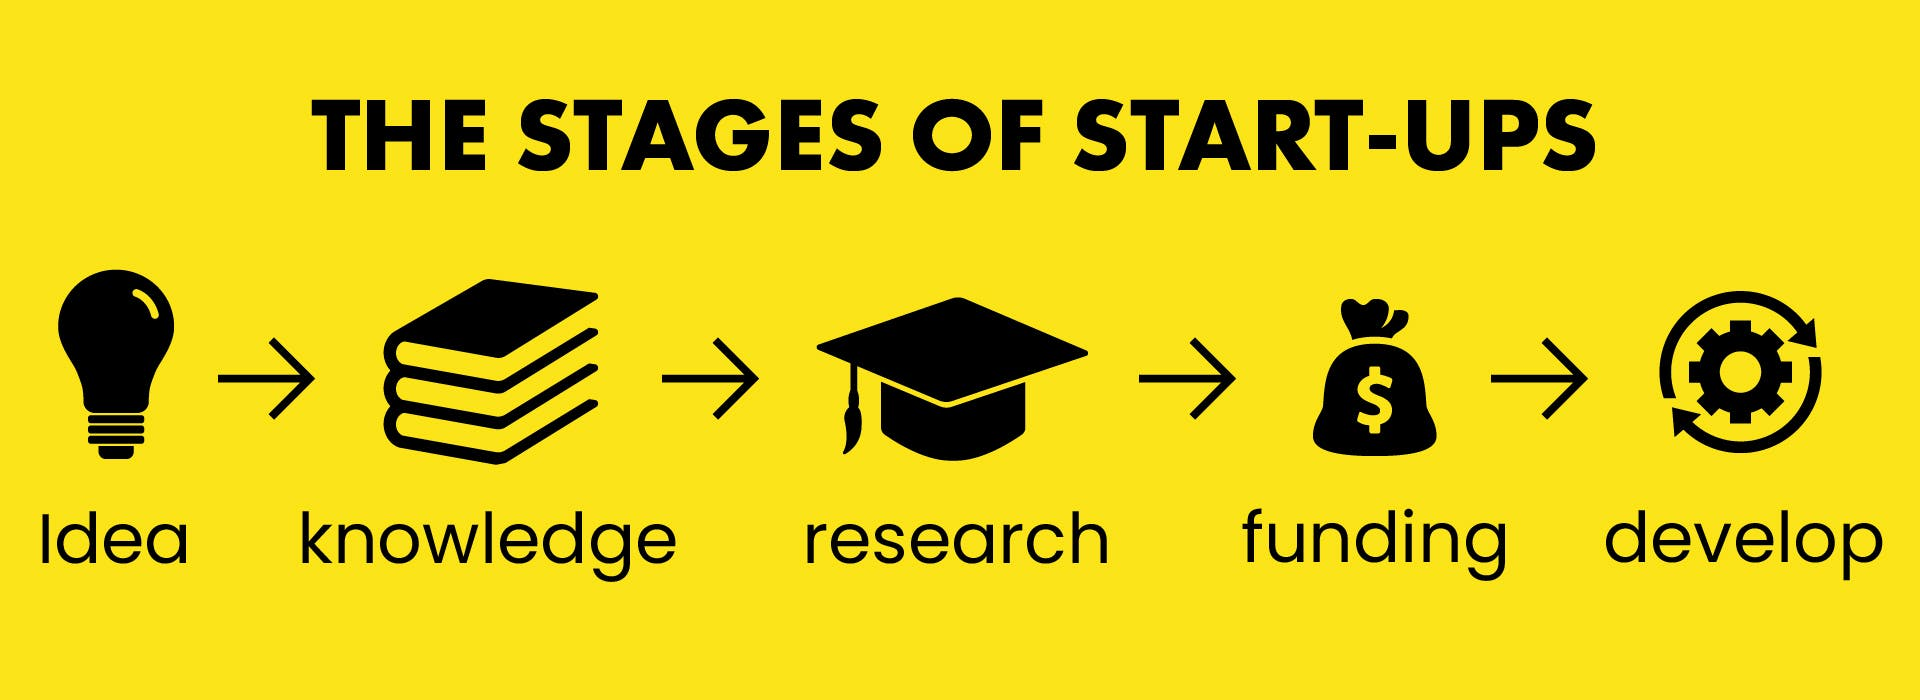 the stages of a start-up business